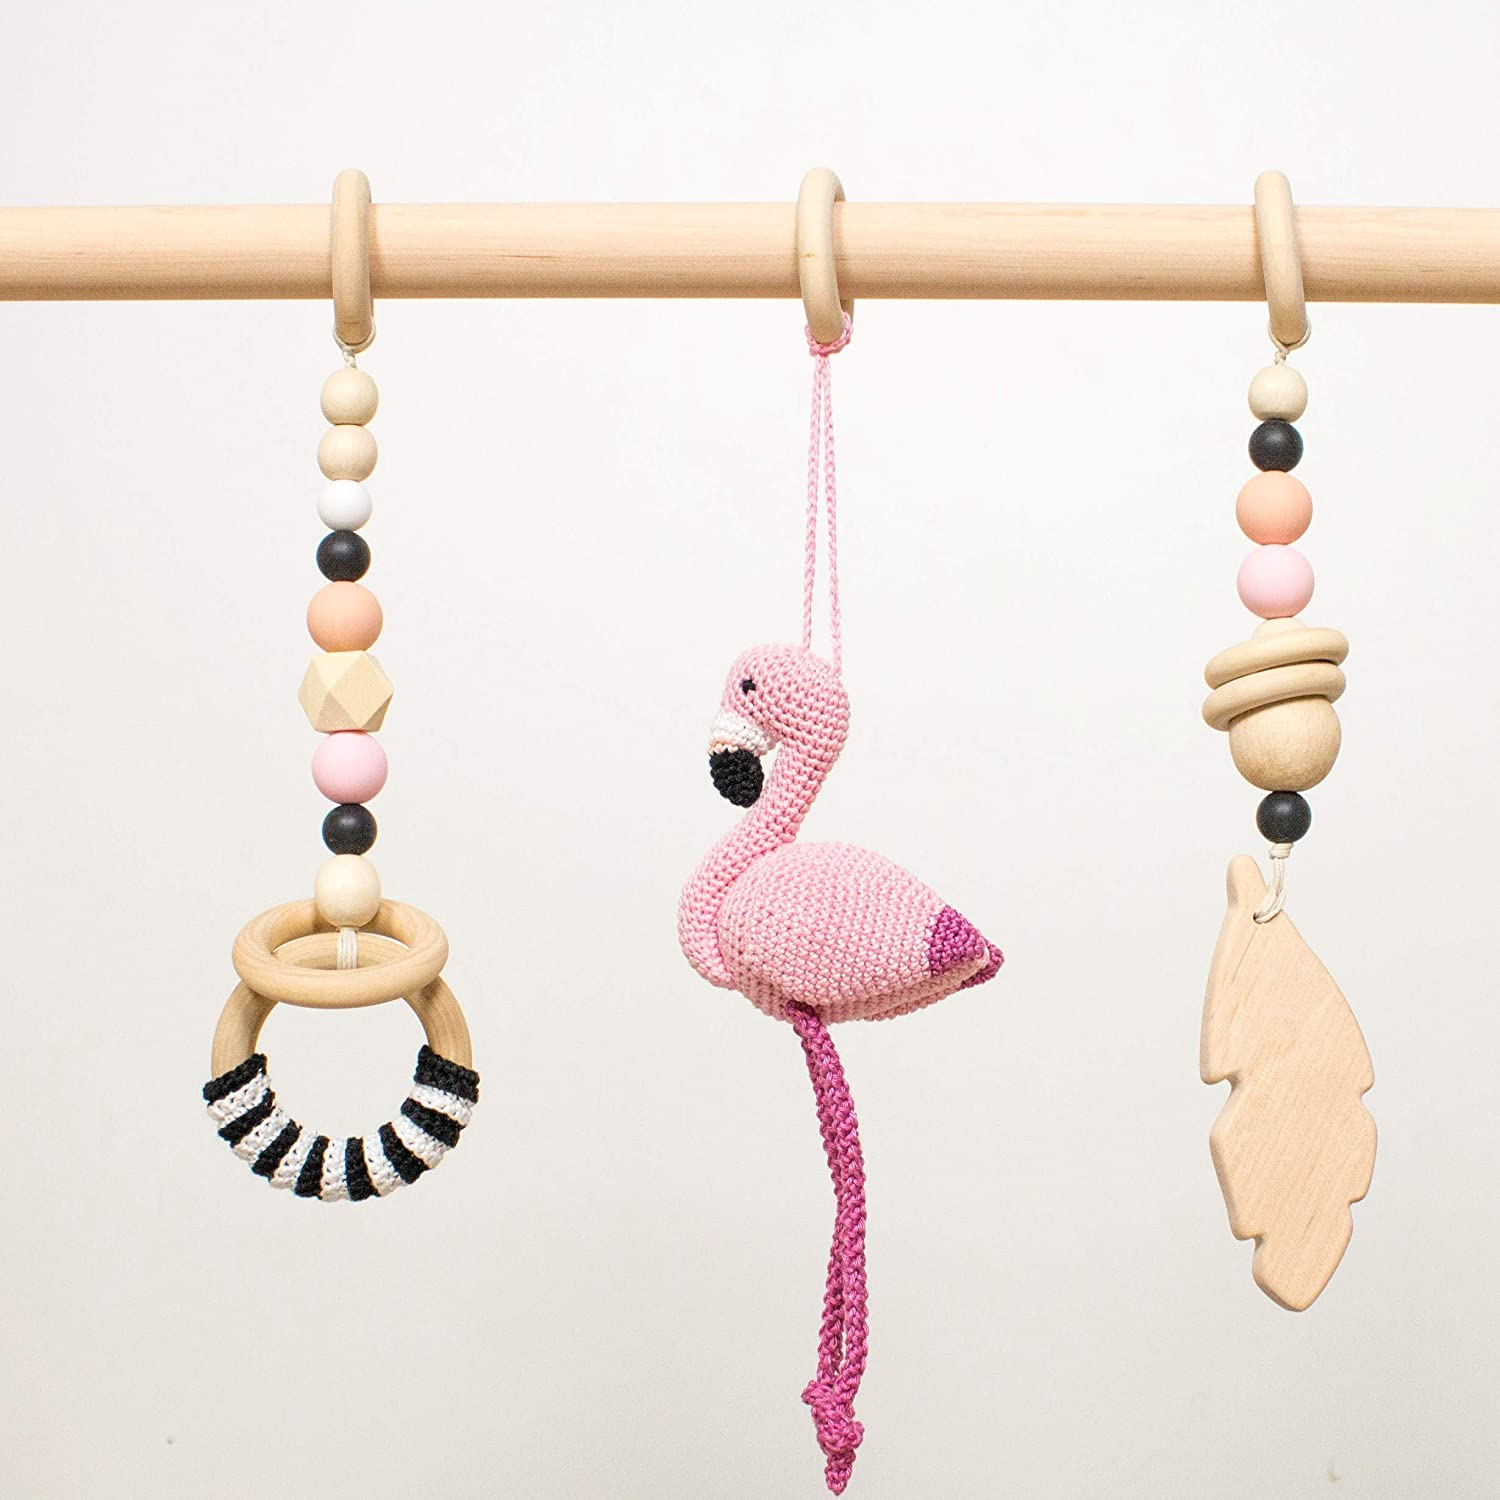 Black and pink baby gym mobiles by LanaCrocheting. Set of 3: Flamingo, feather, ring. Wooden play gym hangers. Crochet rattle. Baby shower gift. Sensory development.